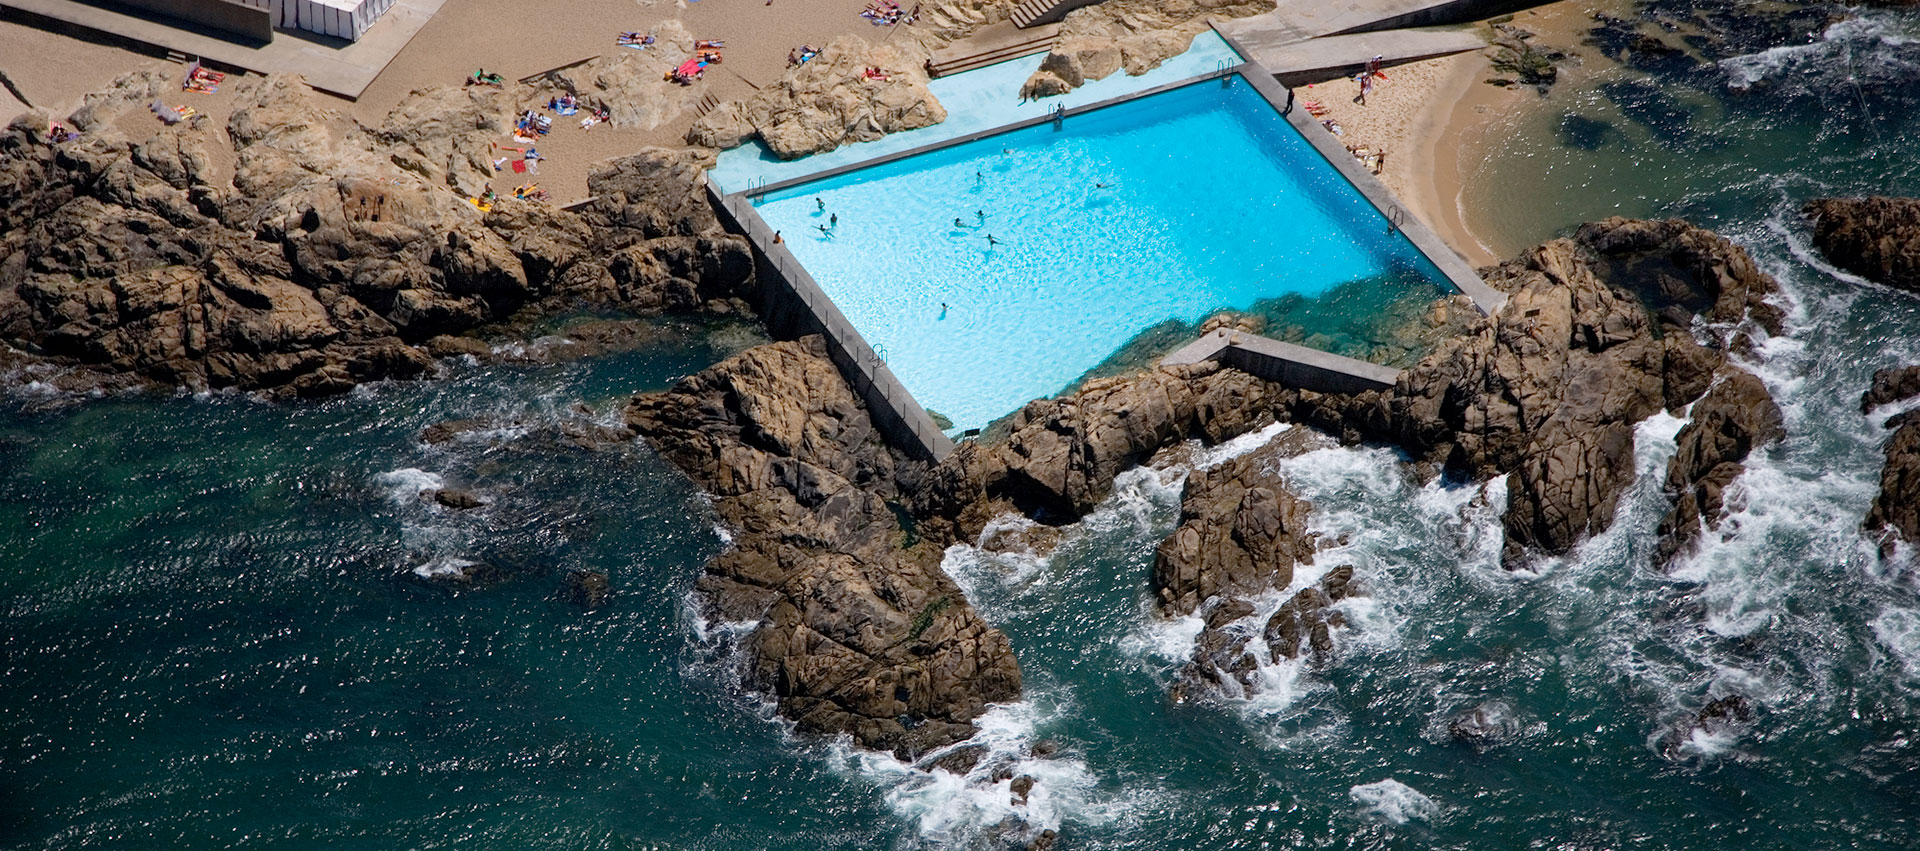 Pools of Marés by Álvaro Siza. 50th anniversary. Photograph © Fernando Guerra / FG+SG